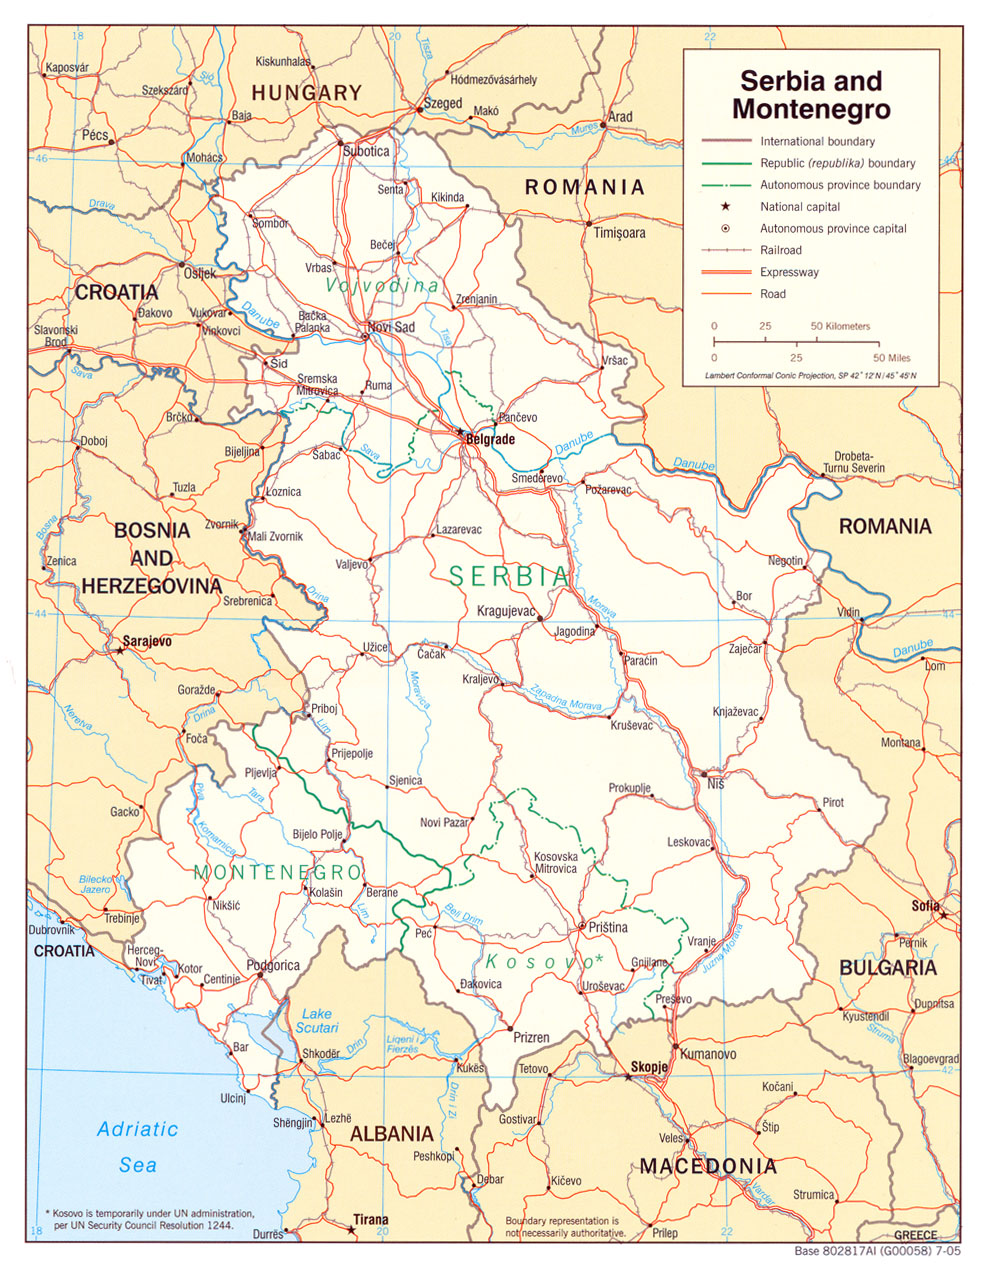 Serbia and Montenegro Political Map